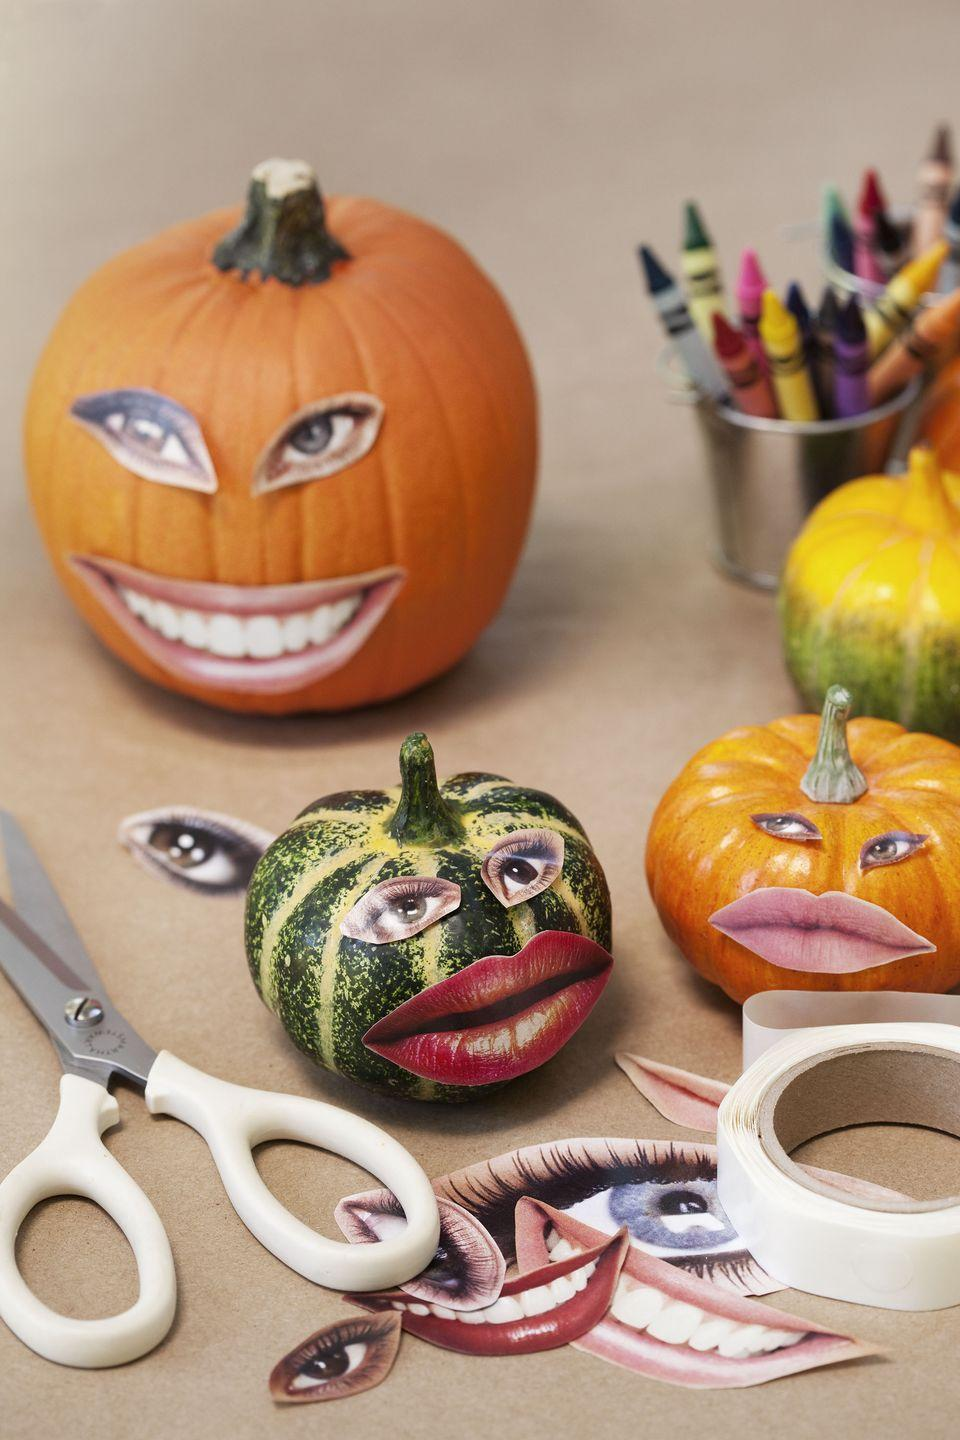 <p>Make use of the old magazine you have sitting around the house by cutting out eyes and mouths to use on your pumpkin. Simply use some craft glue to stick the faces on and voila! You've got yourself a funny pumpkin that took no time at all to make. </p>